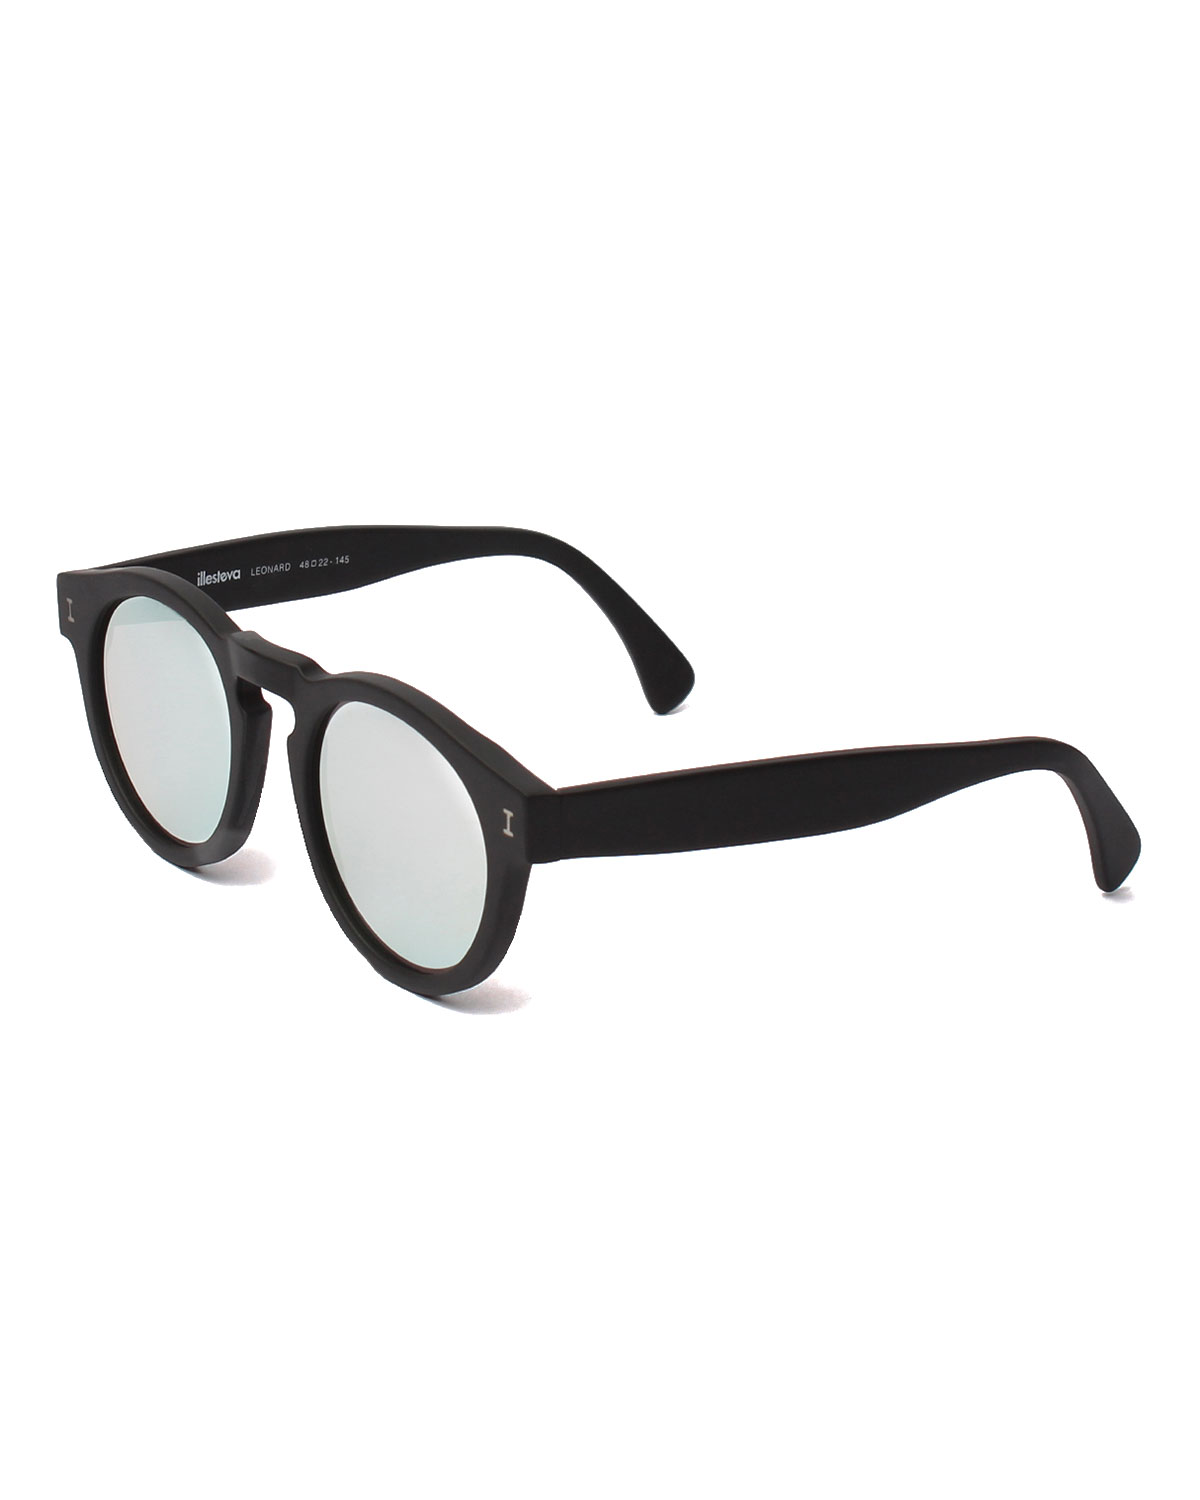 Leonard Round Mirrored Sunglasses, Black/Silver